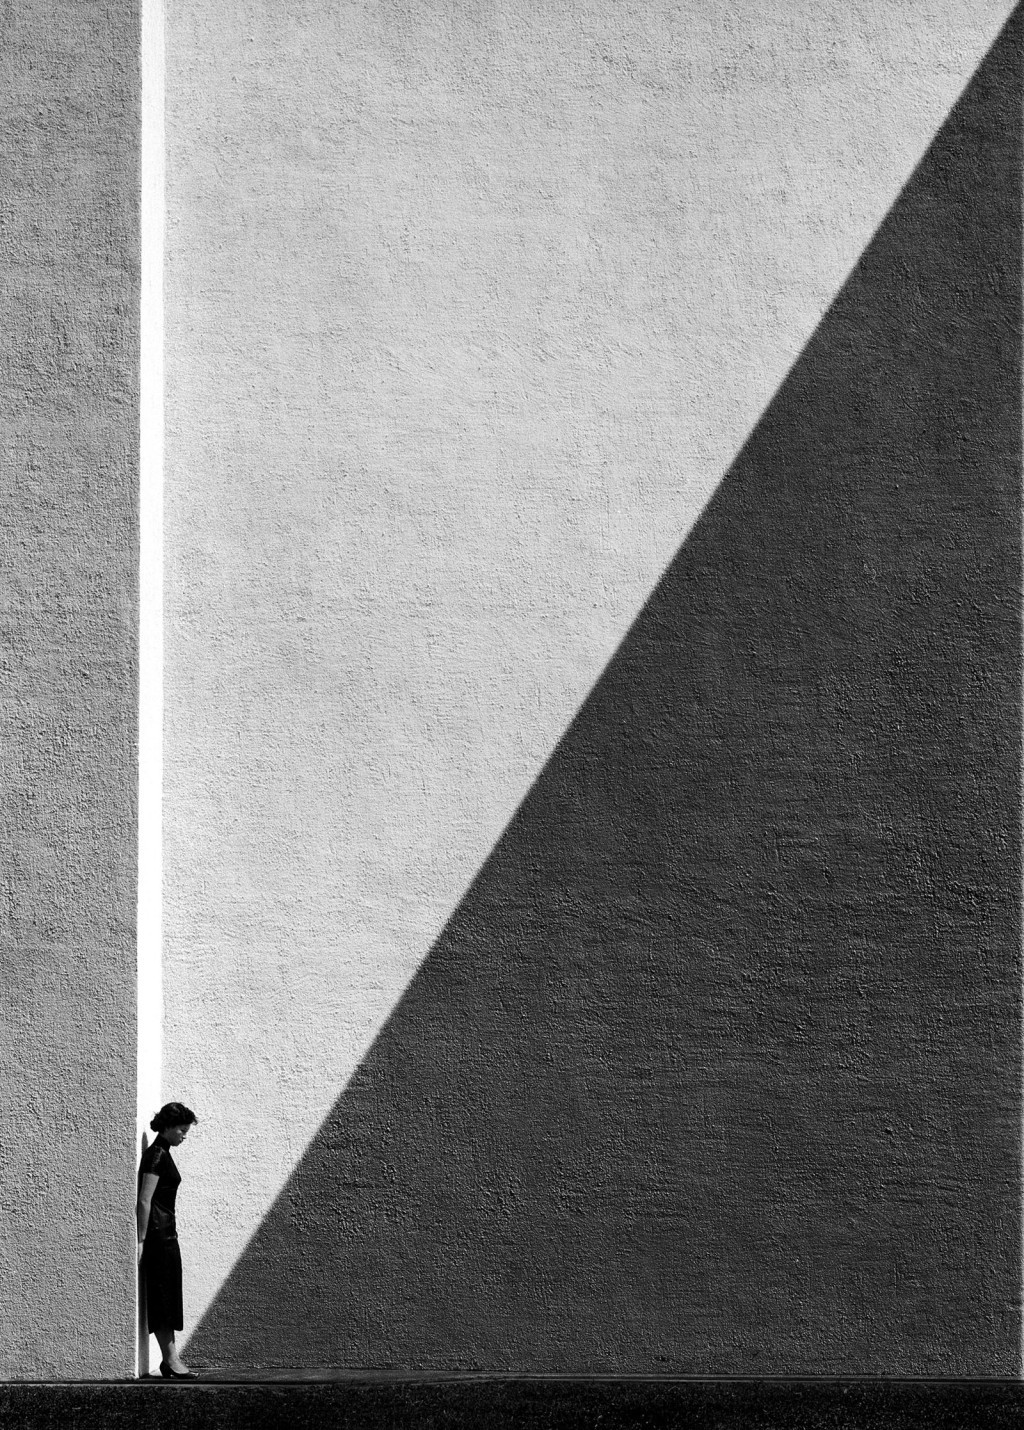 dailyartspace:   Approaching Shadow, 1956/2012 by Fan Ho